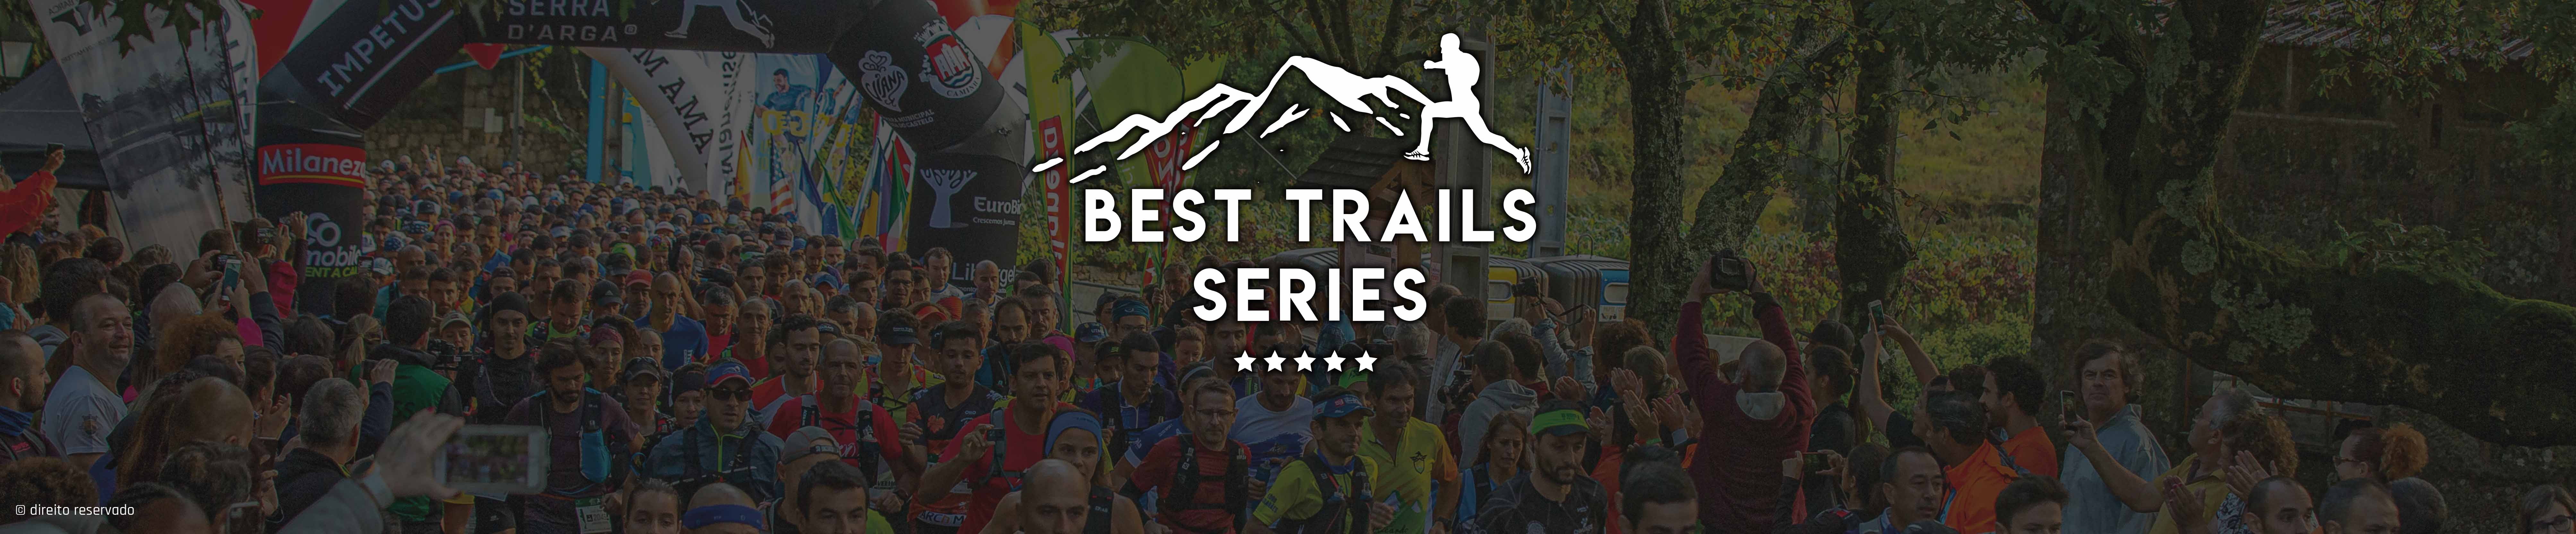 Banner_best_trail_series_homepage